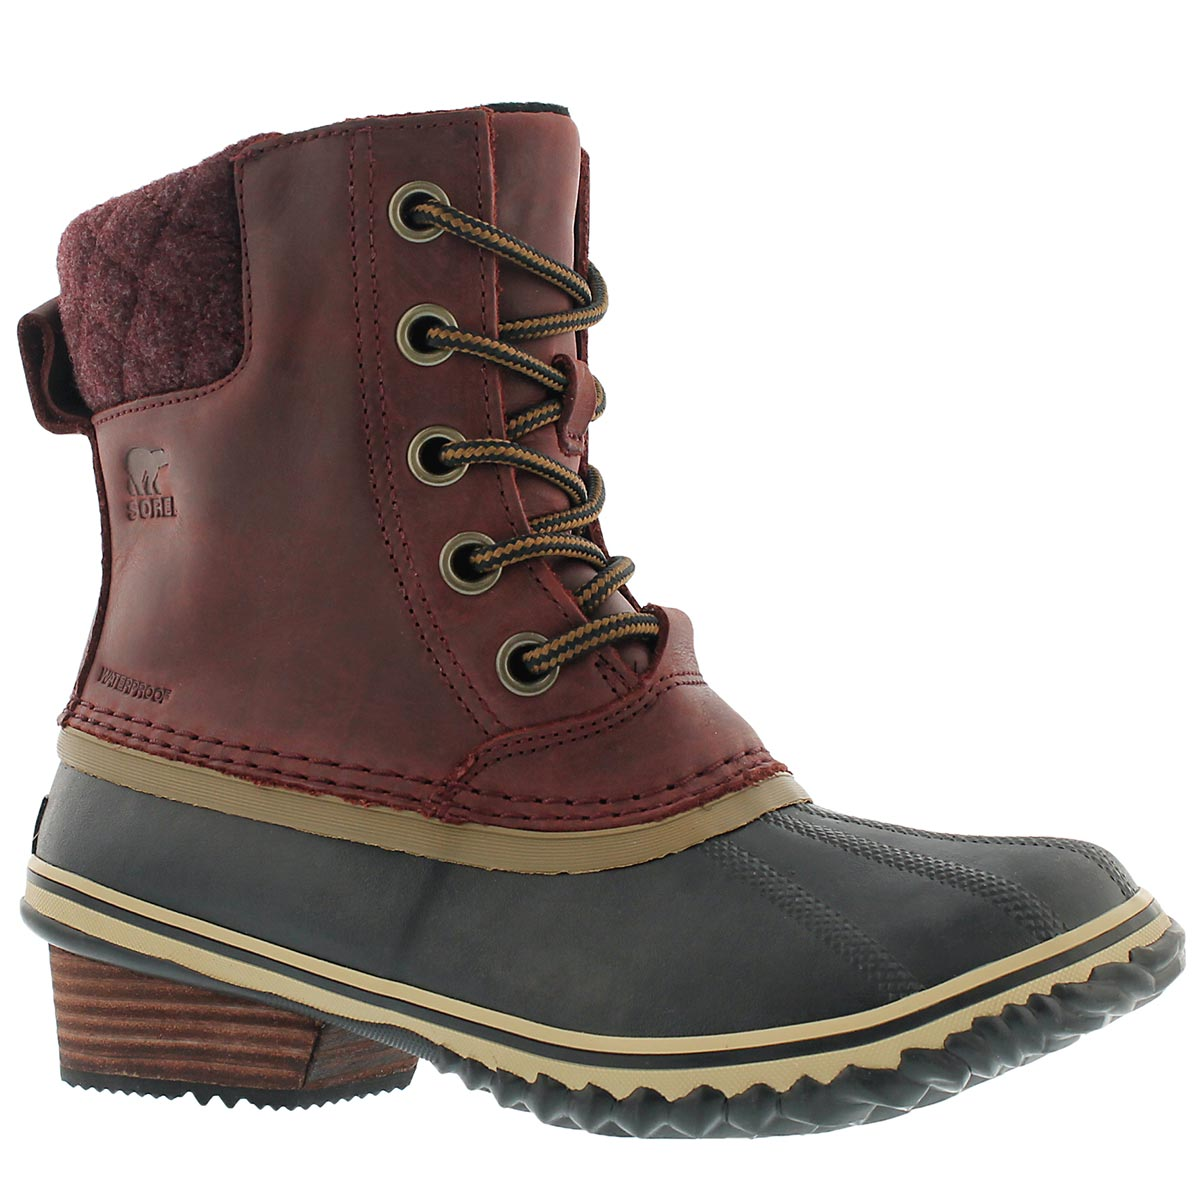 Lds Slimpack II Lace redwood wtpf boot